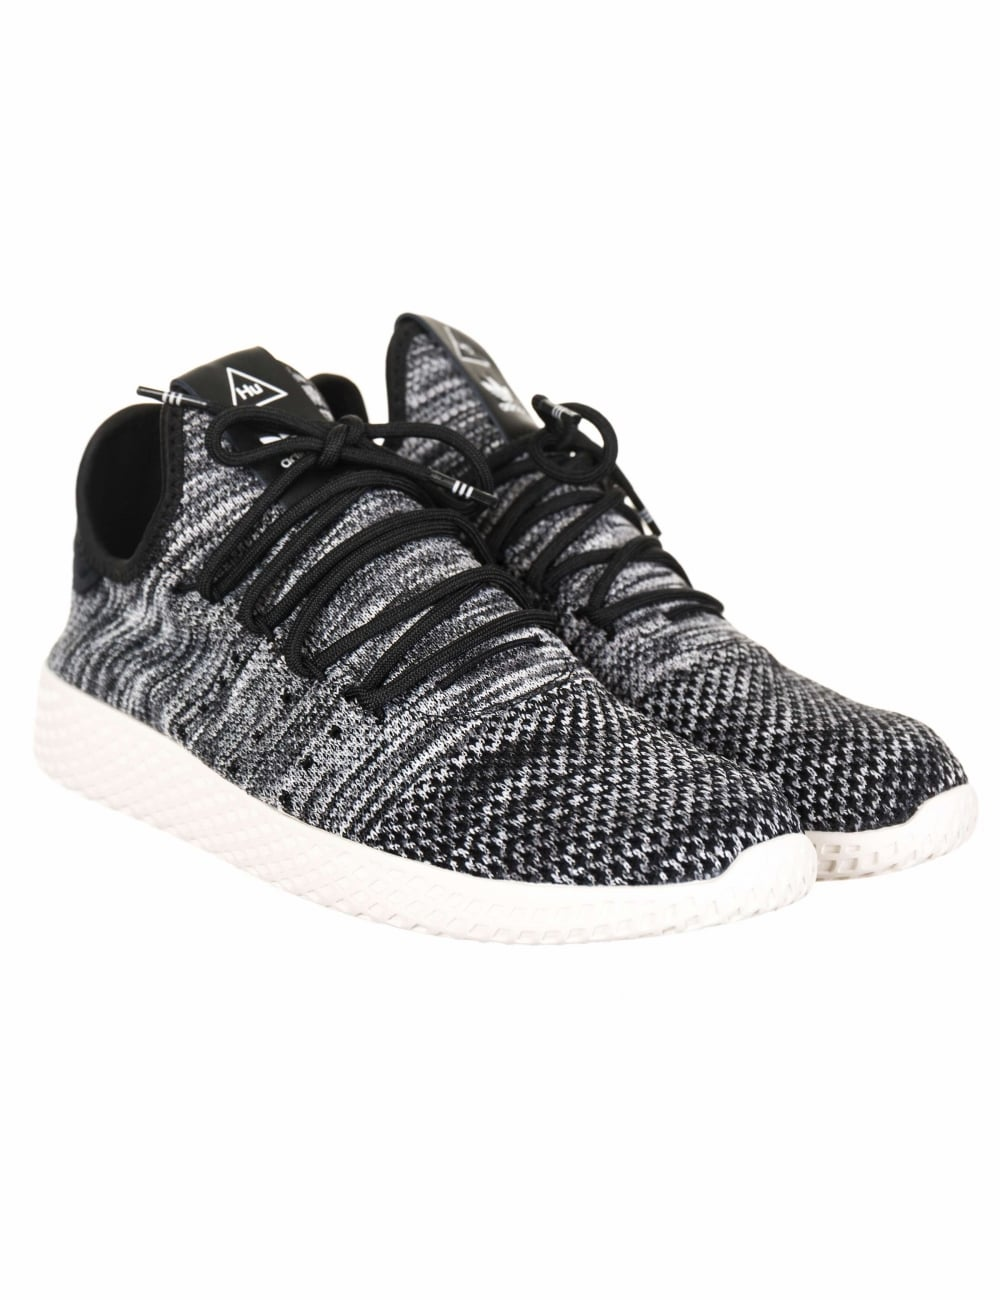 2b569db28 Adidas Originals x Pharrell Williams Tennis HU PK Trainers - Chalk ...